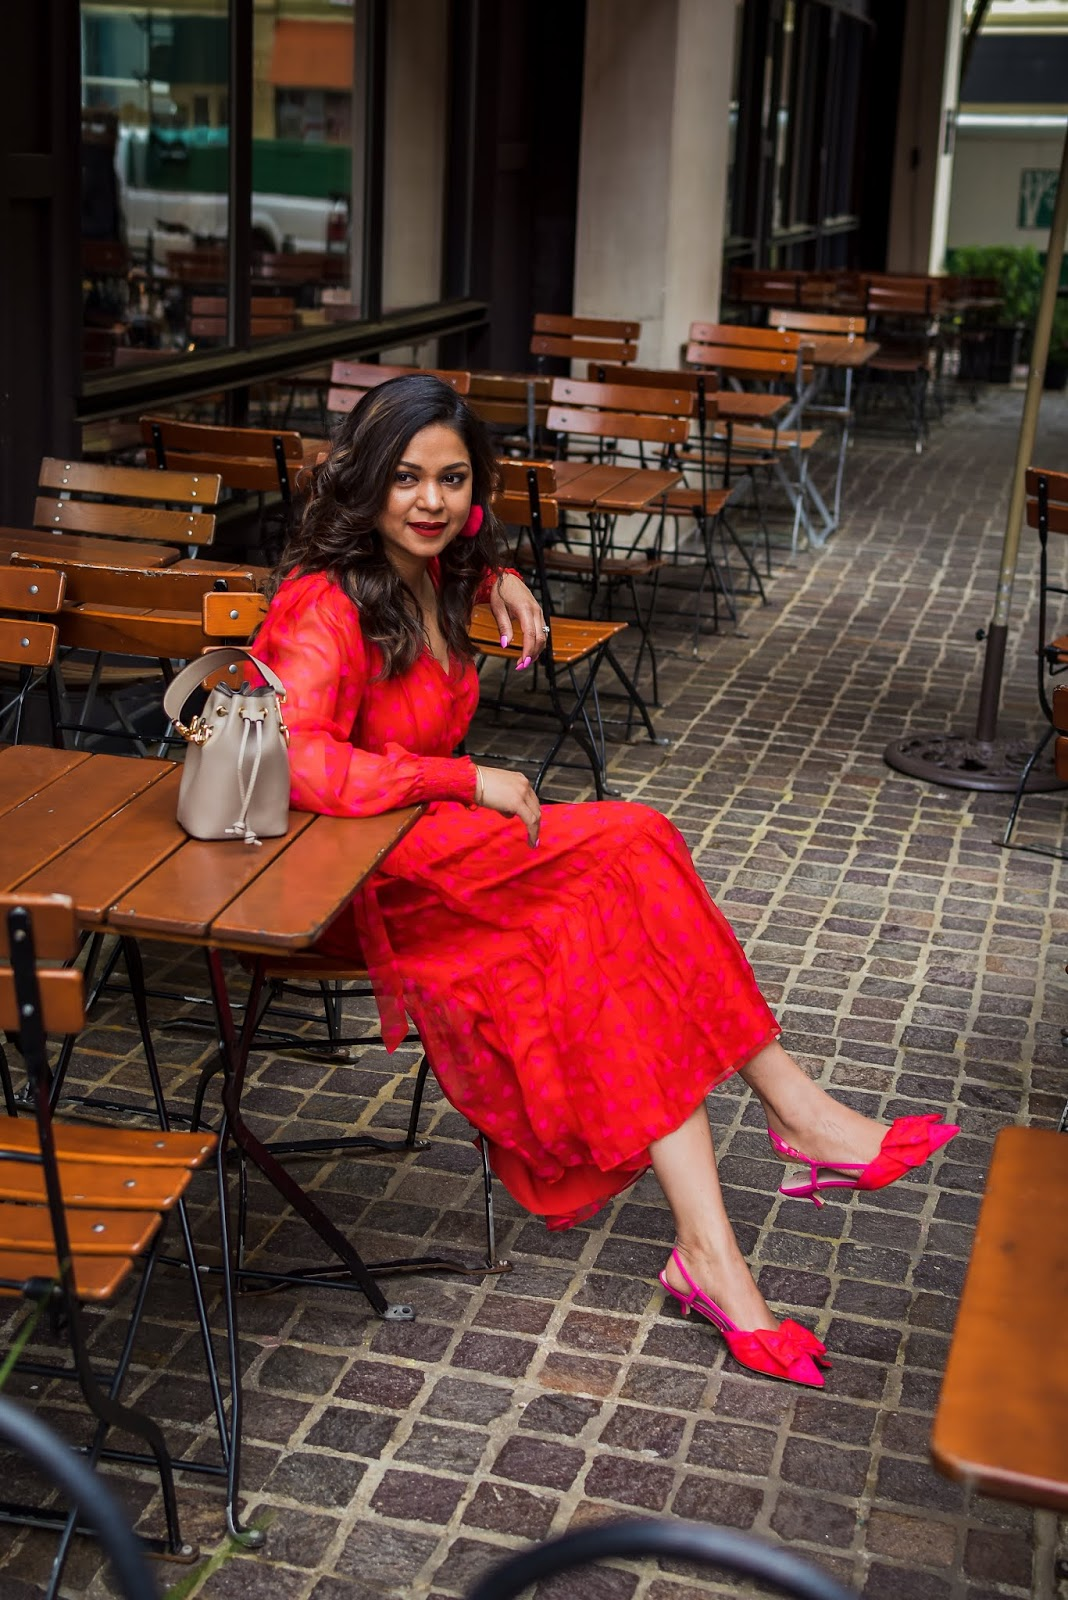 kate spade dress, kate spade heart shoes, kitten heels, valentines aday dress, street style, fashion , style, saumya shiohare, myriad musings